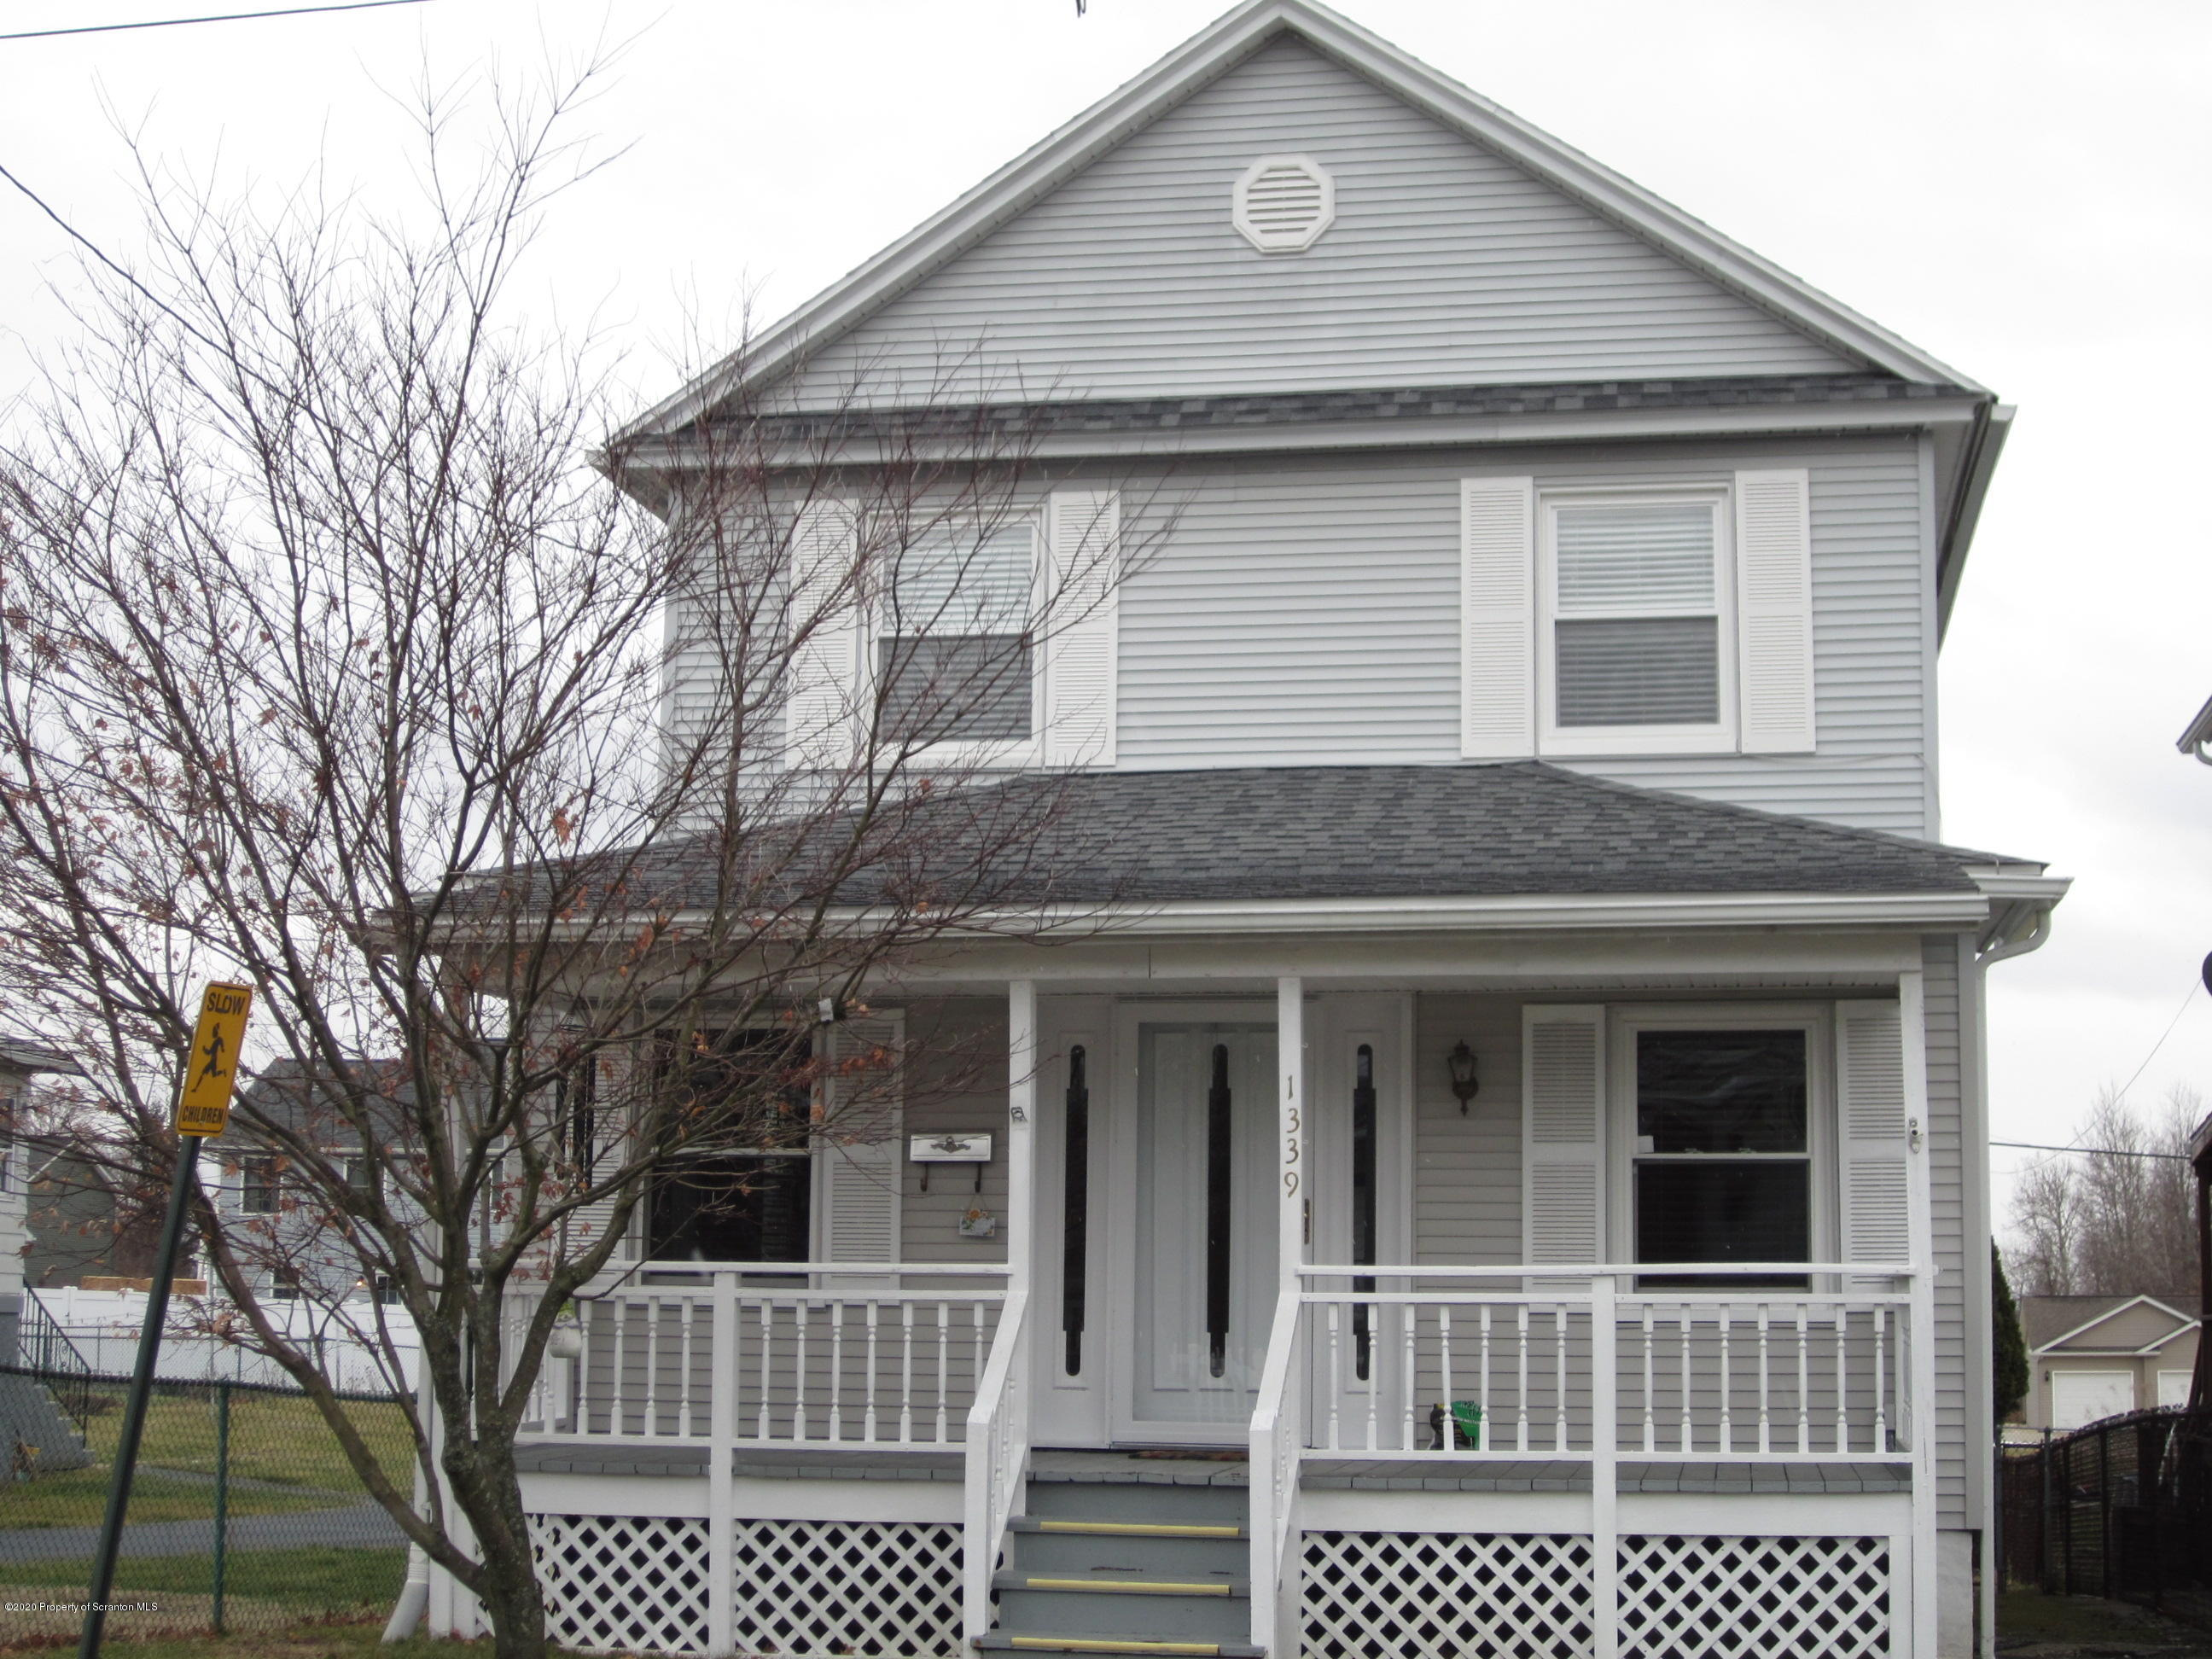 1339 Rundle, Scranton, Pennsylvania 18504, 3 Bedrooms Bedrooms, 6 Rooms Rooms,1 BathroomBathrooms,Single Family,For Sale,Rundle,20-369